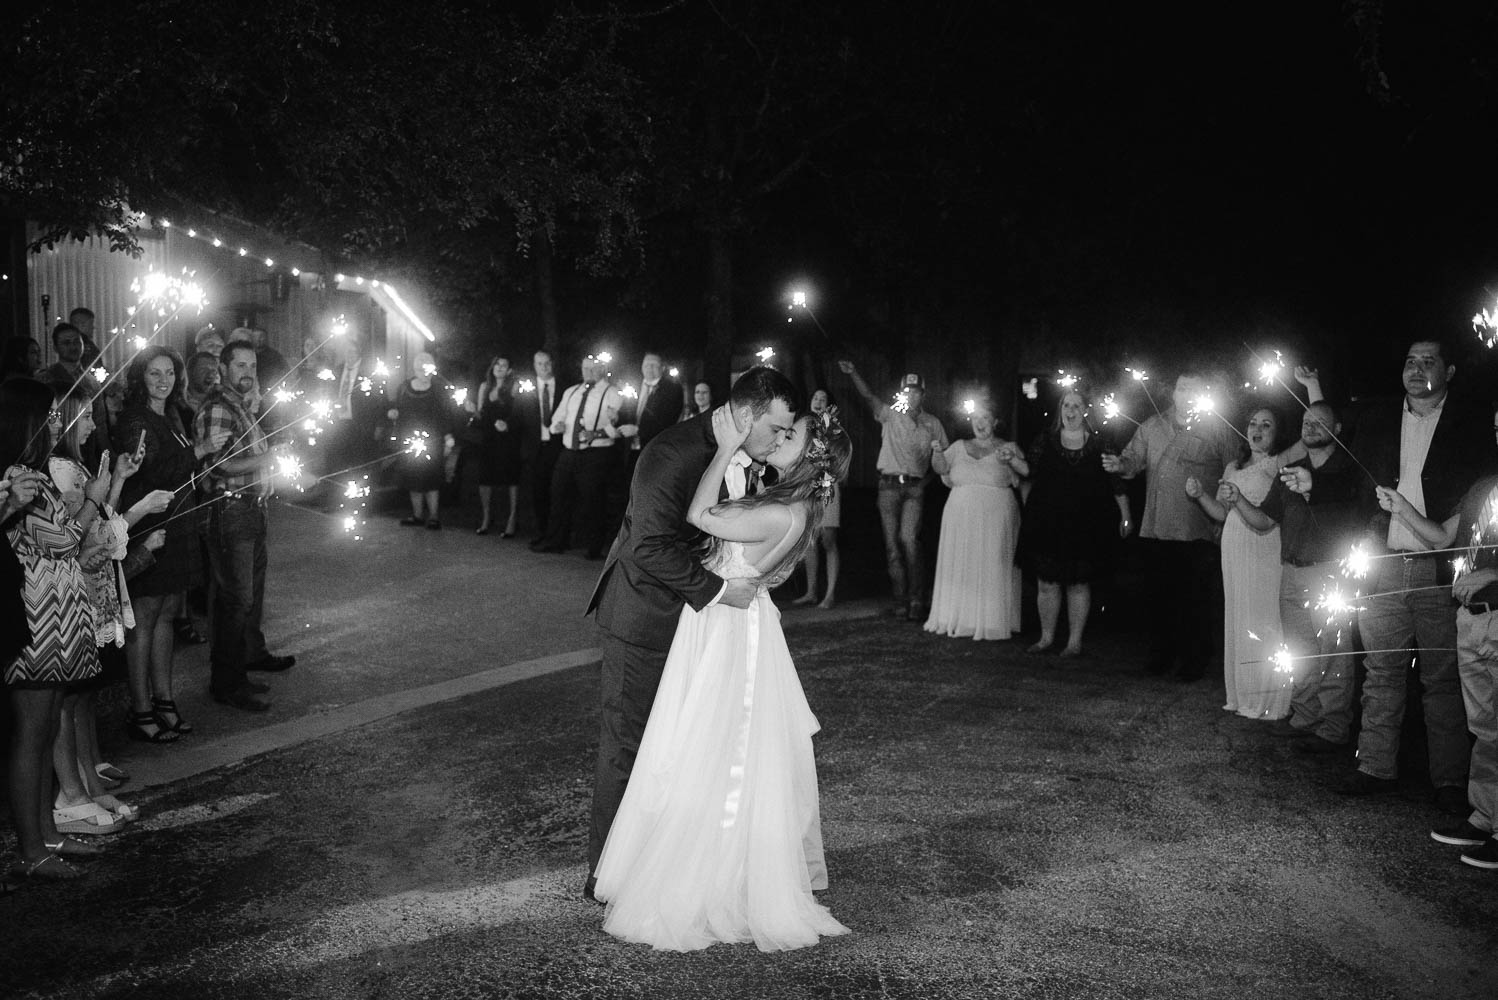 sparkler exit with bride and groom kissing at the end